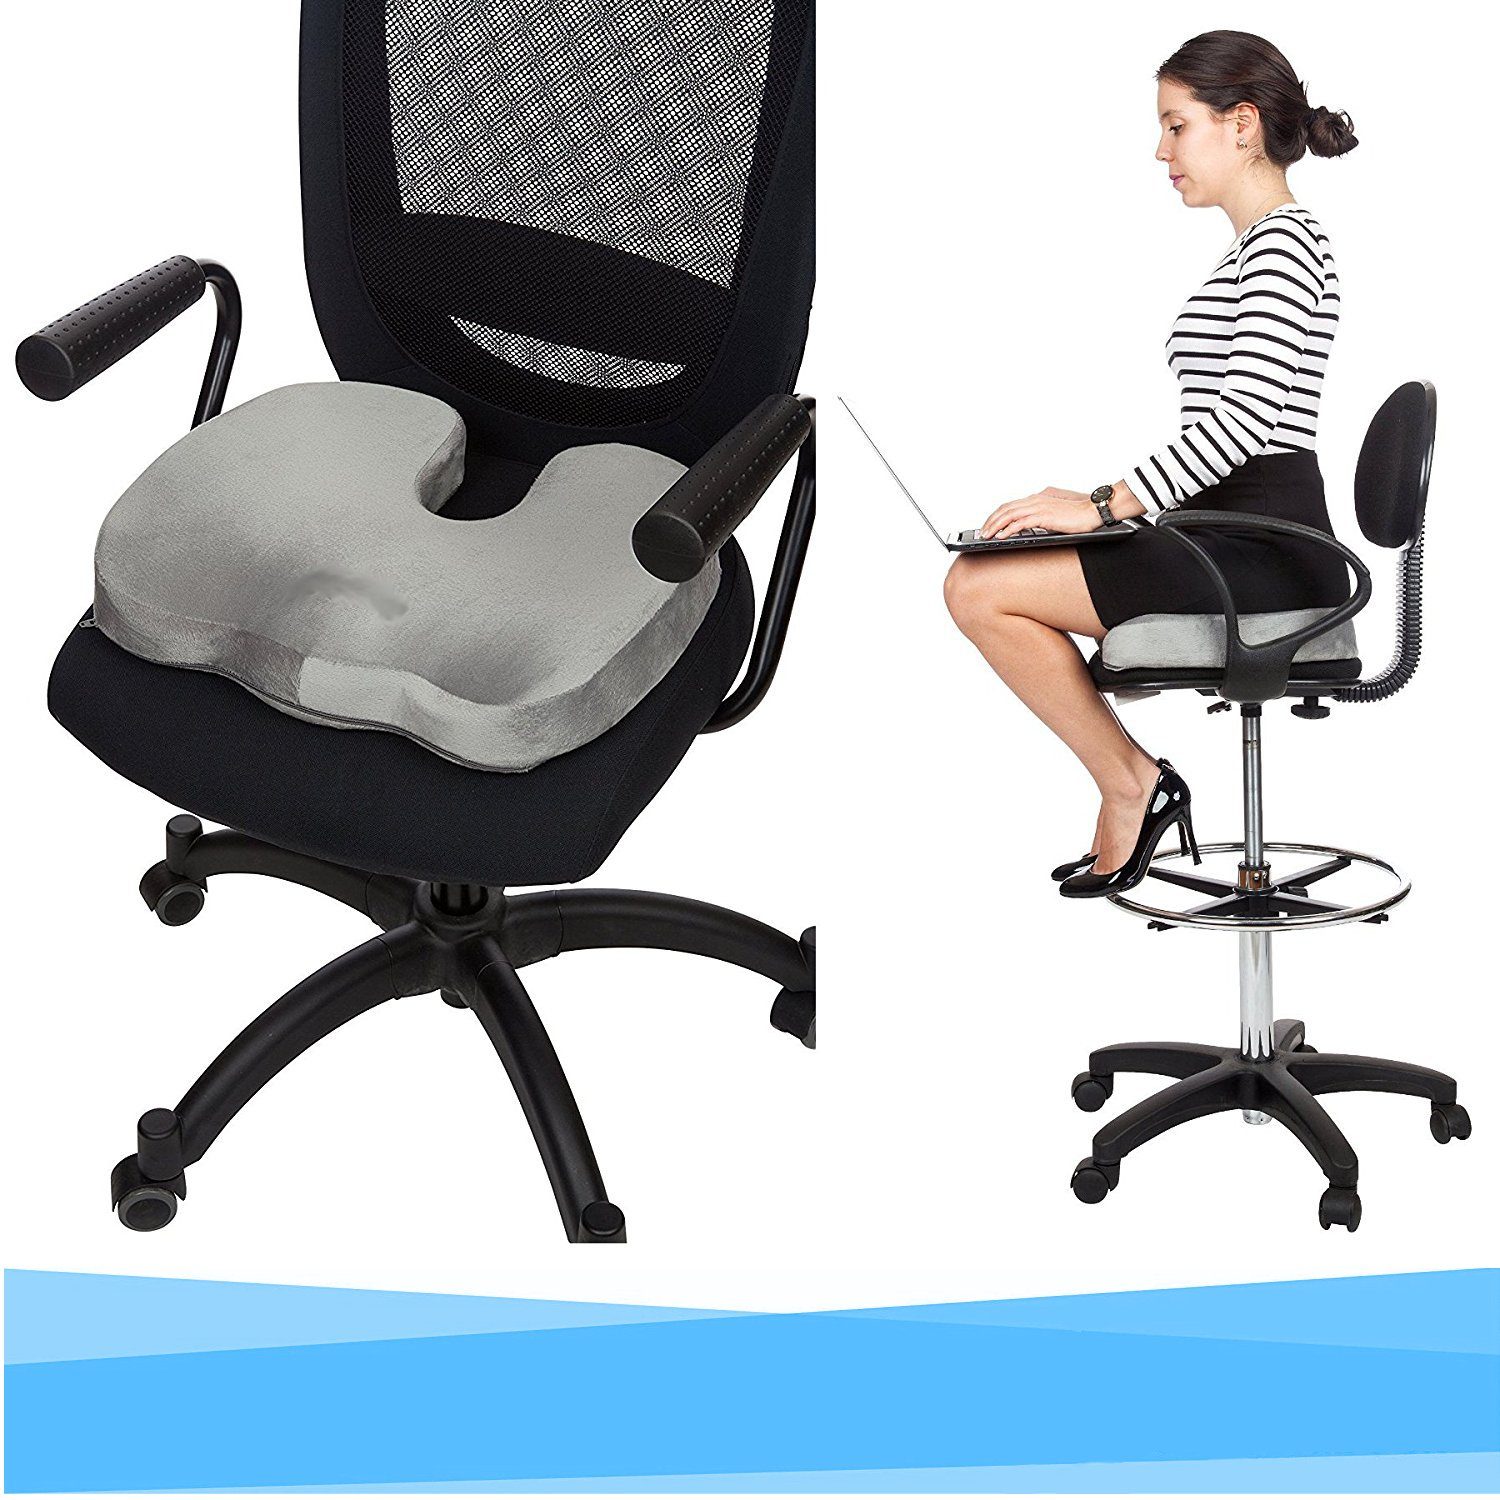 Orthopedic Coccyx Seat Support Cushion